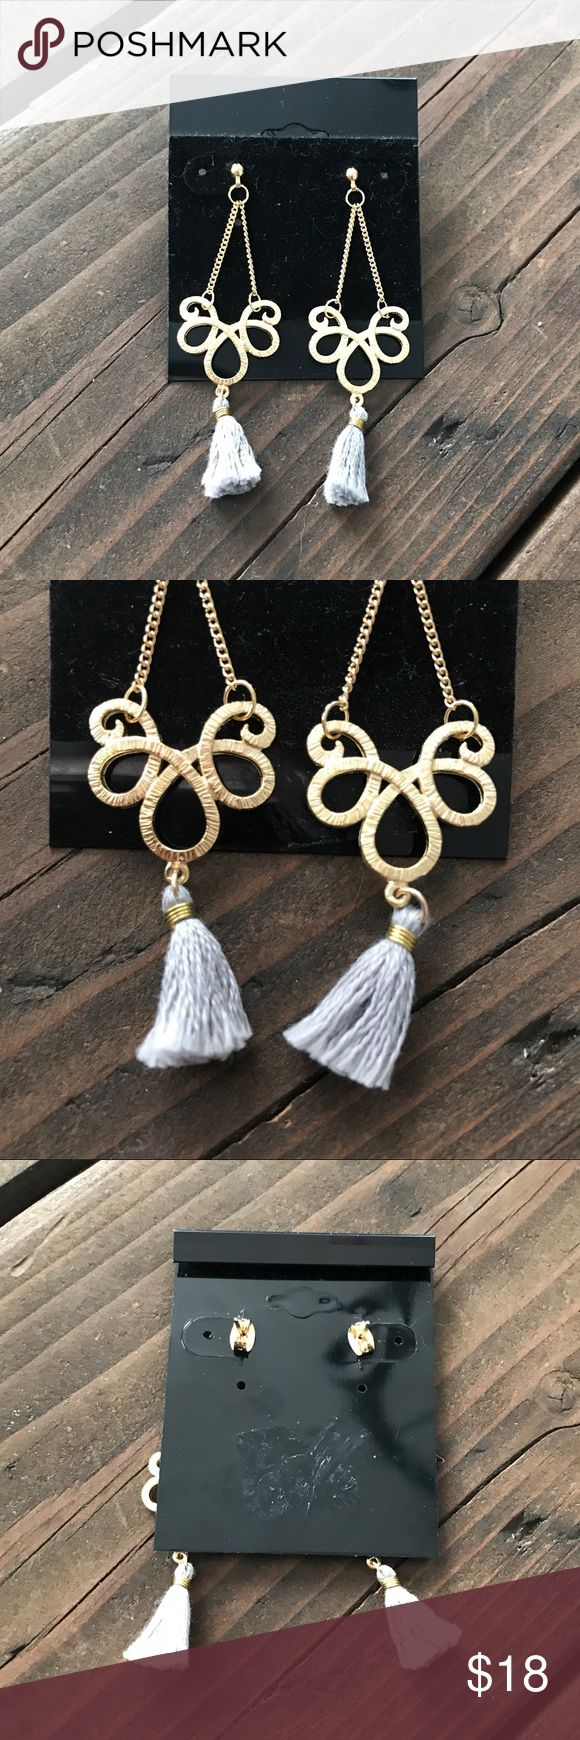 "Vintage Gold & Grey Chandelier Tassel Earrings Stunning Vintage Chandelier Earrings Gold in Color with a Grey Tassel Dangling at Bottom 2.25"" Long from Top to Bottom Butterfly Closure Jewelry Earrings"